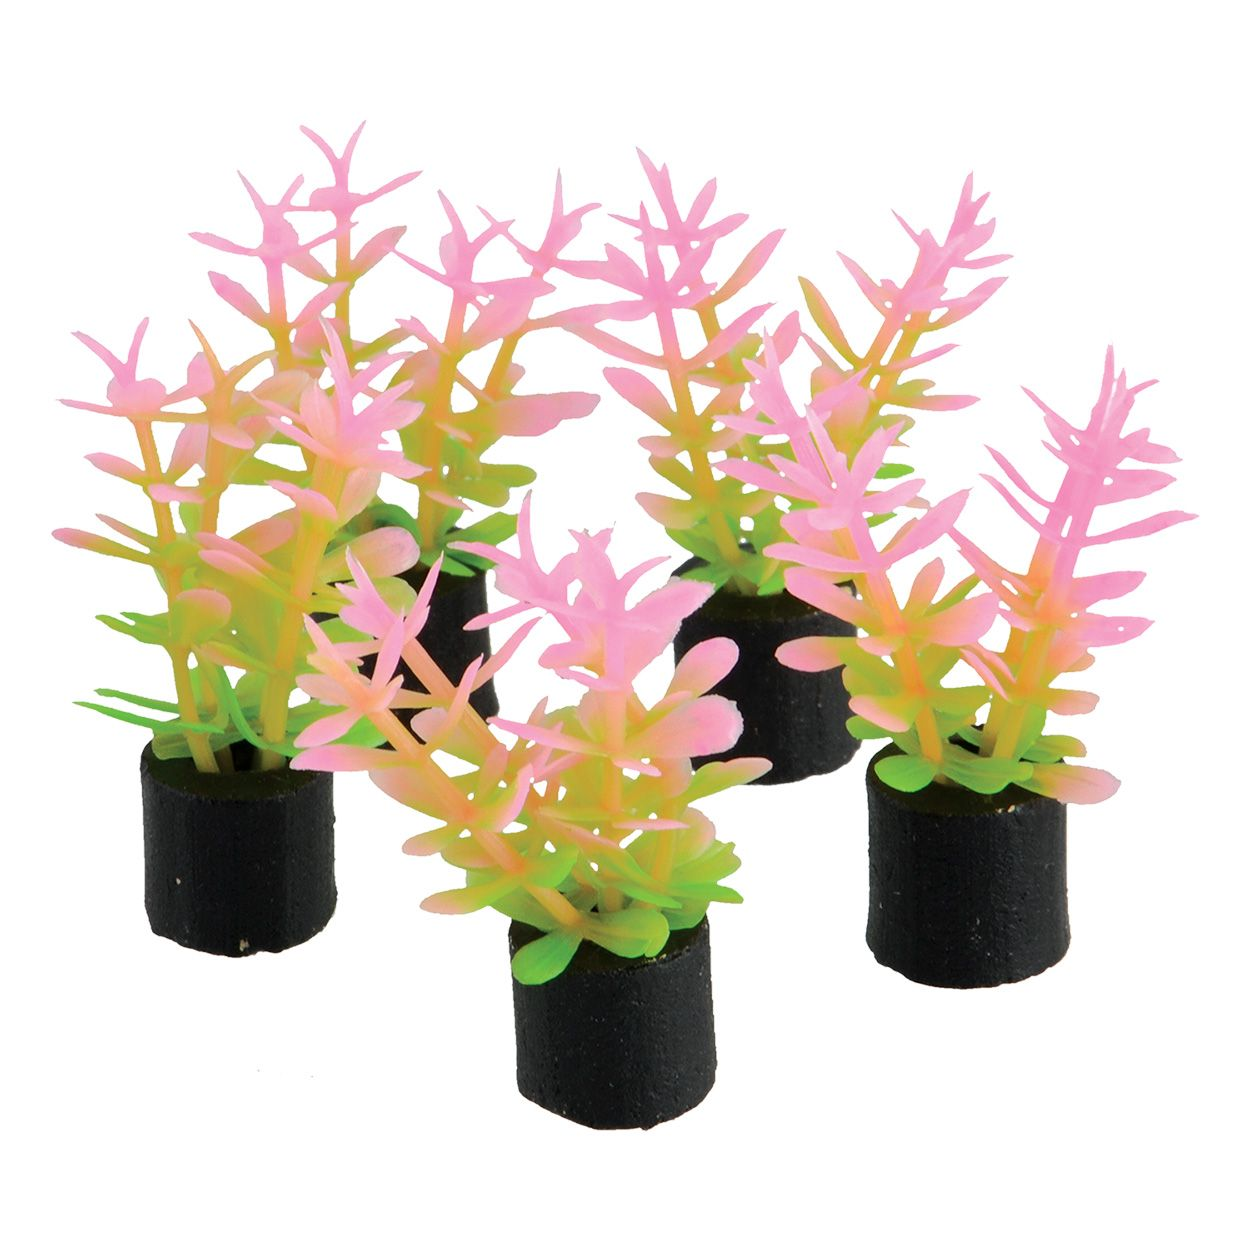 Underwater Treasures Pink and Green Mini Plant - 1.5 inch (5 pk)